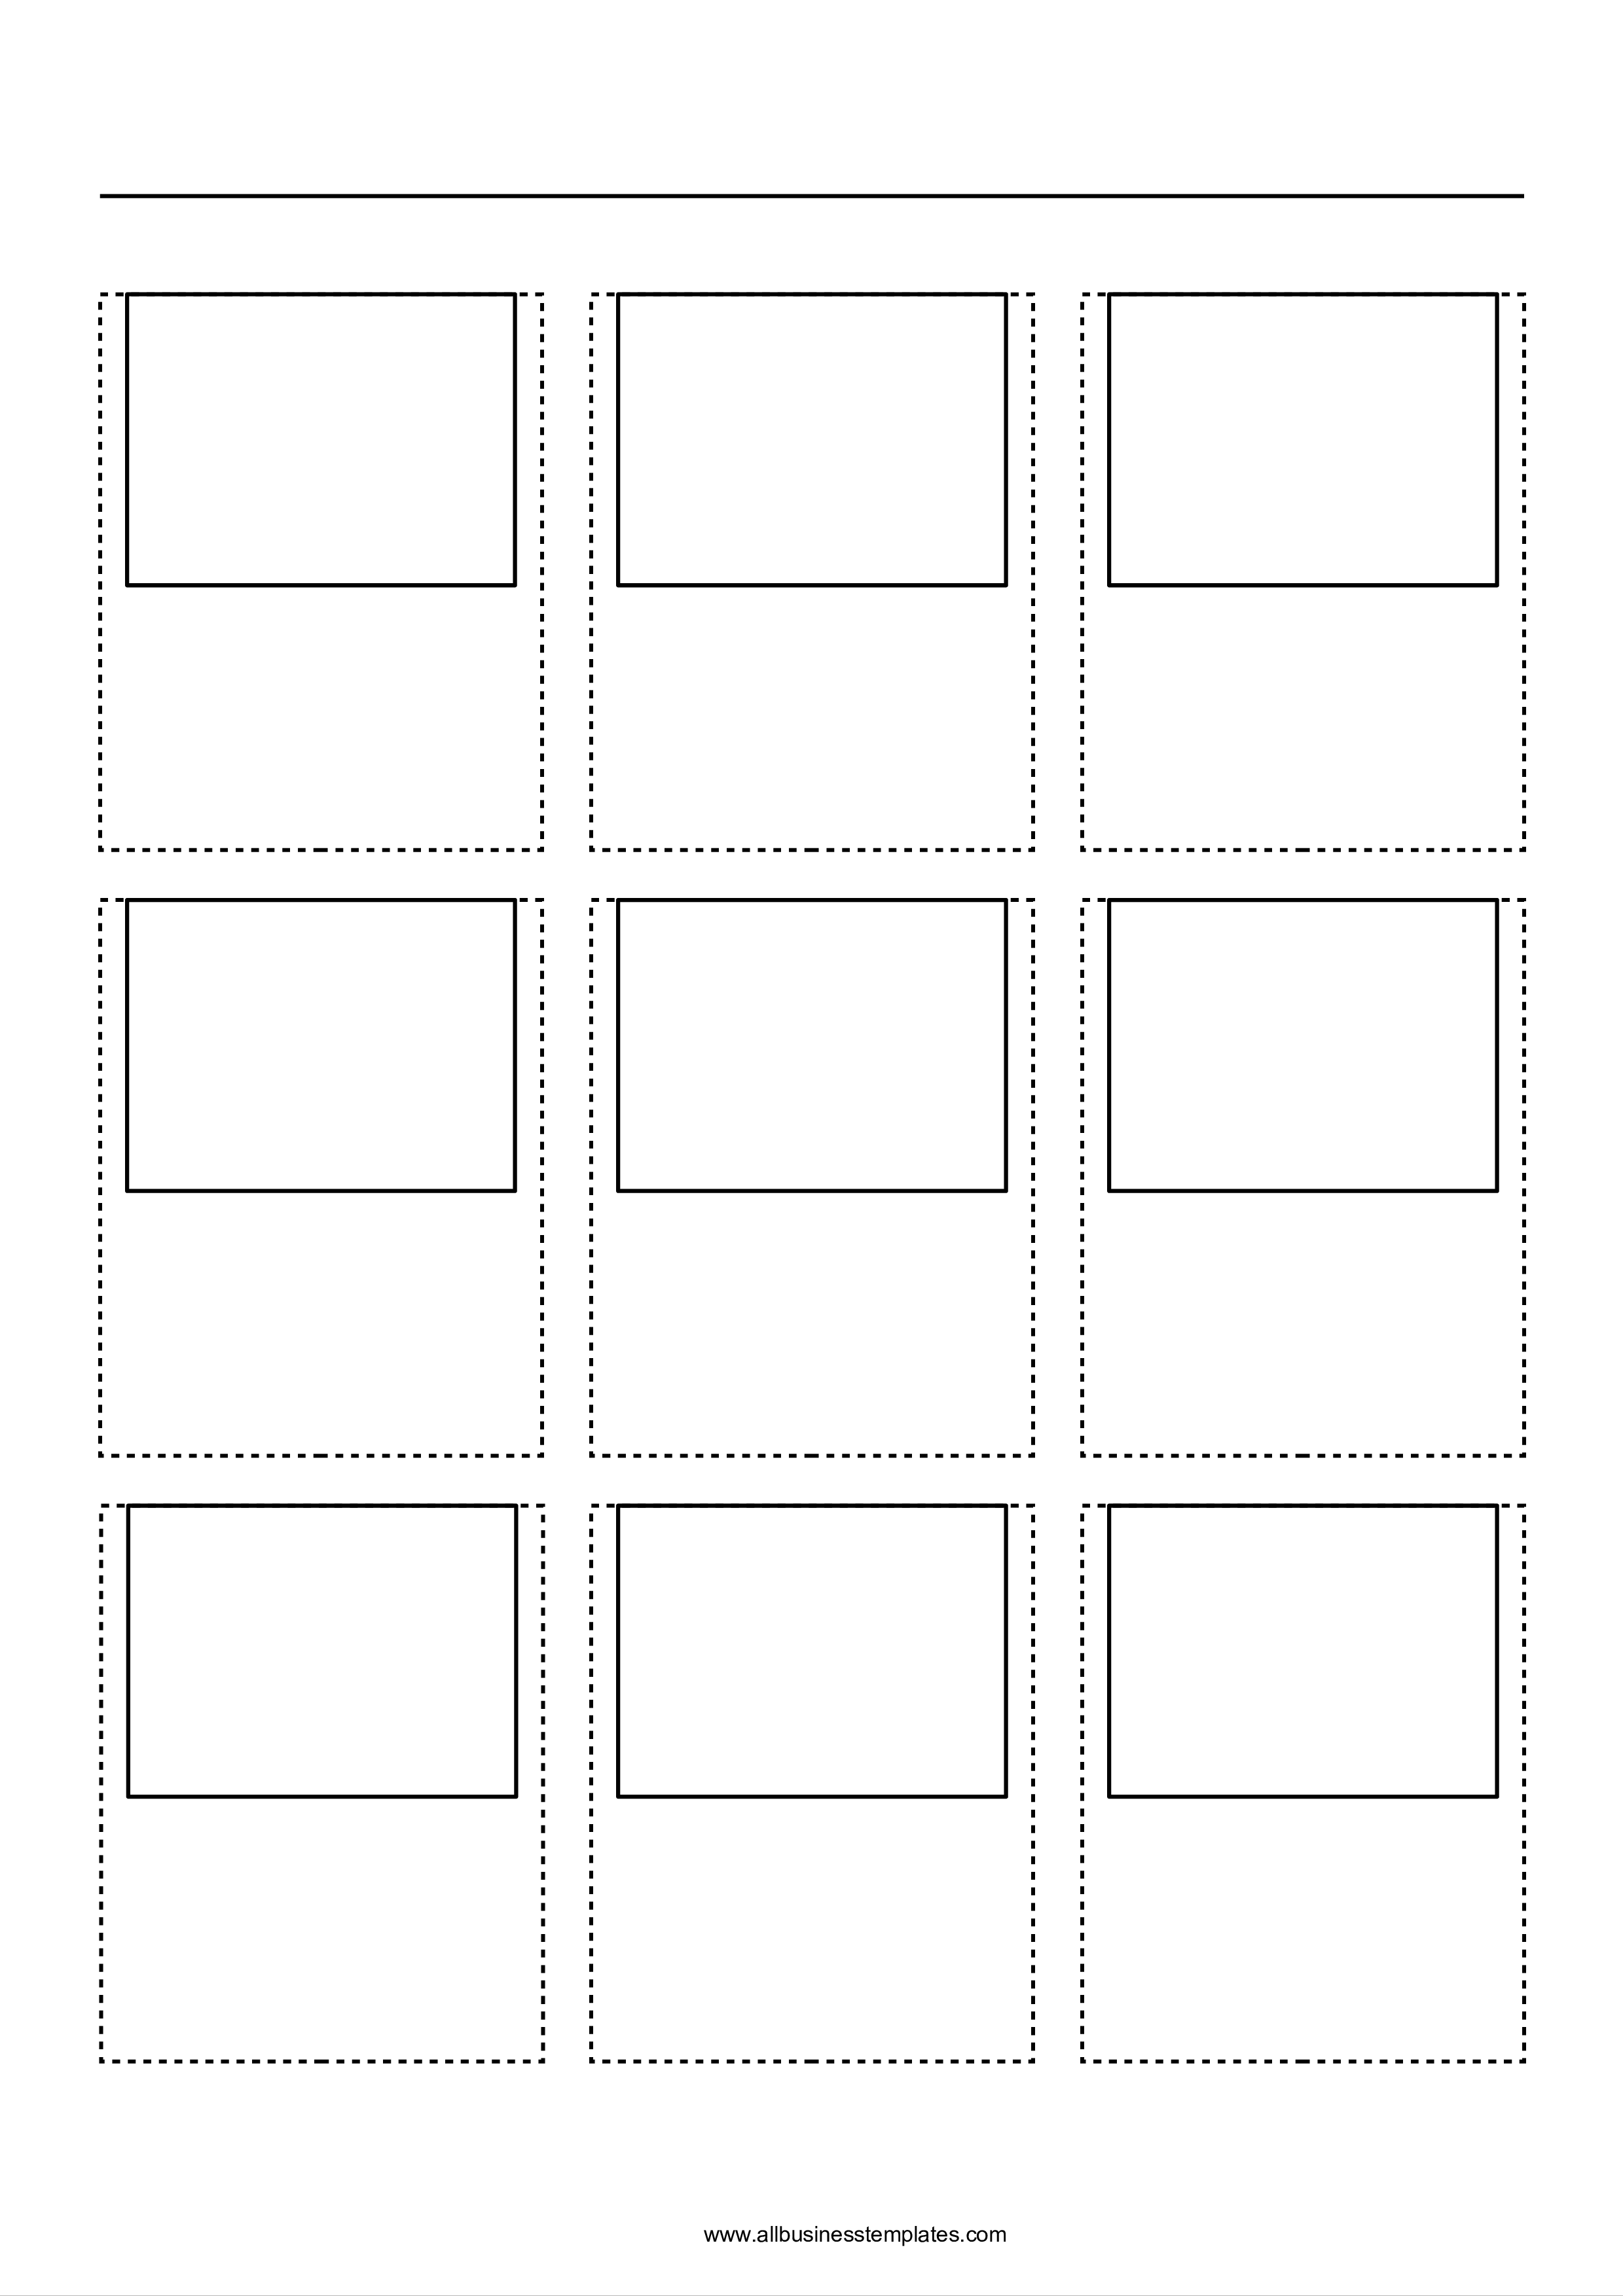 Movie Story Board 3x3 How To Produce A Movie Storyboard For Film And Video Download This Professional Free A4 Movie Storyboard Template Templates Storyboard